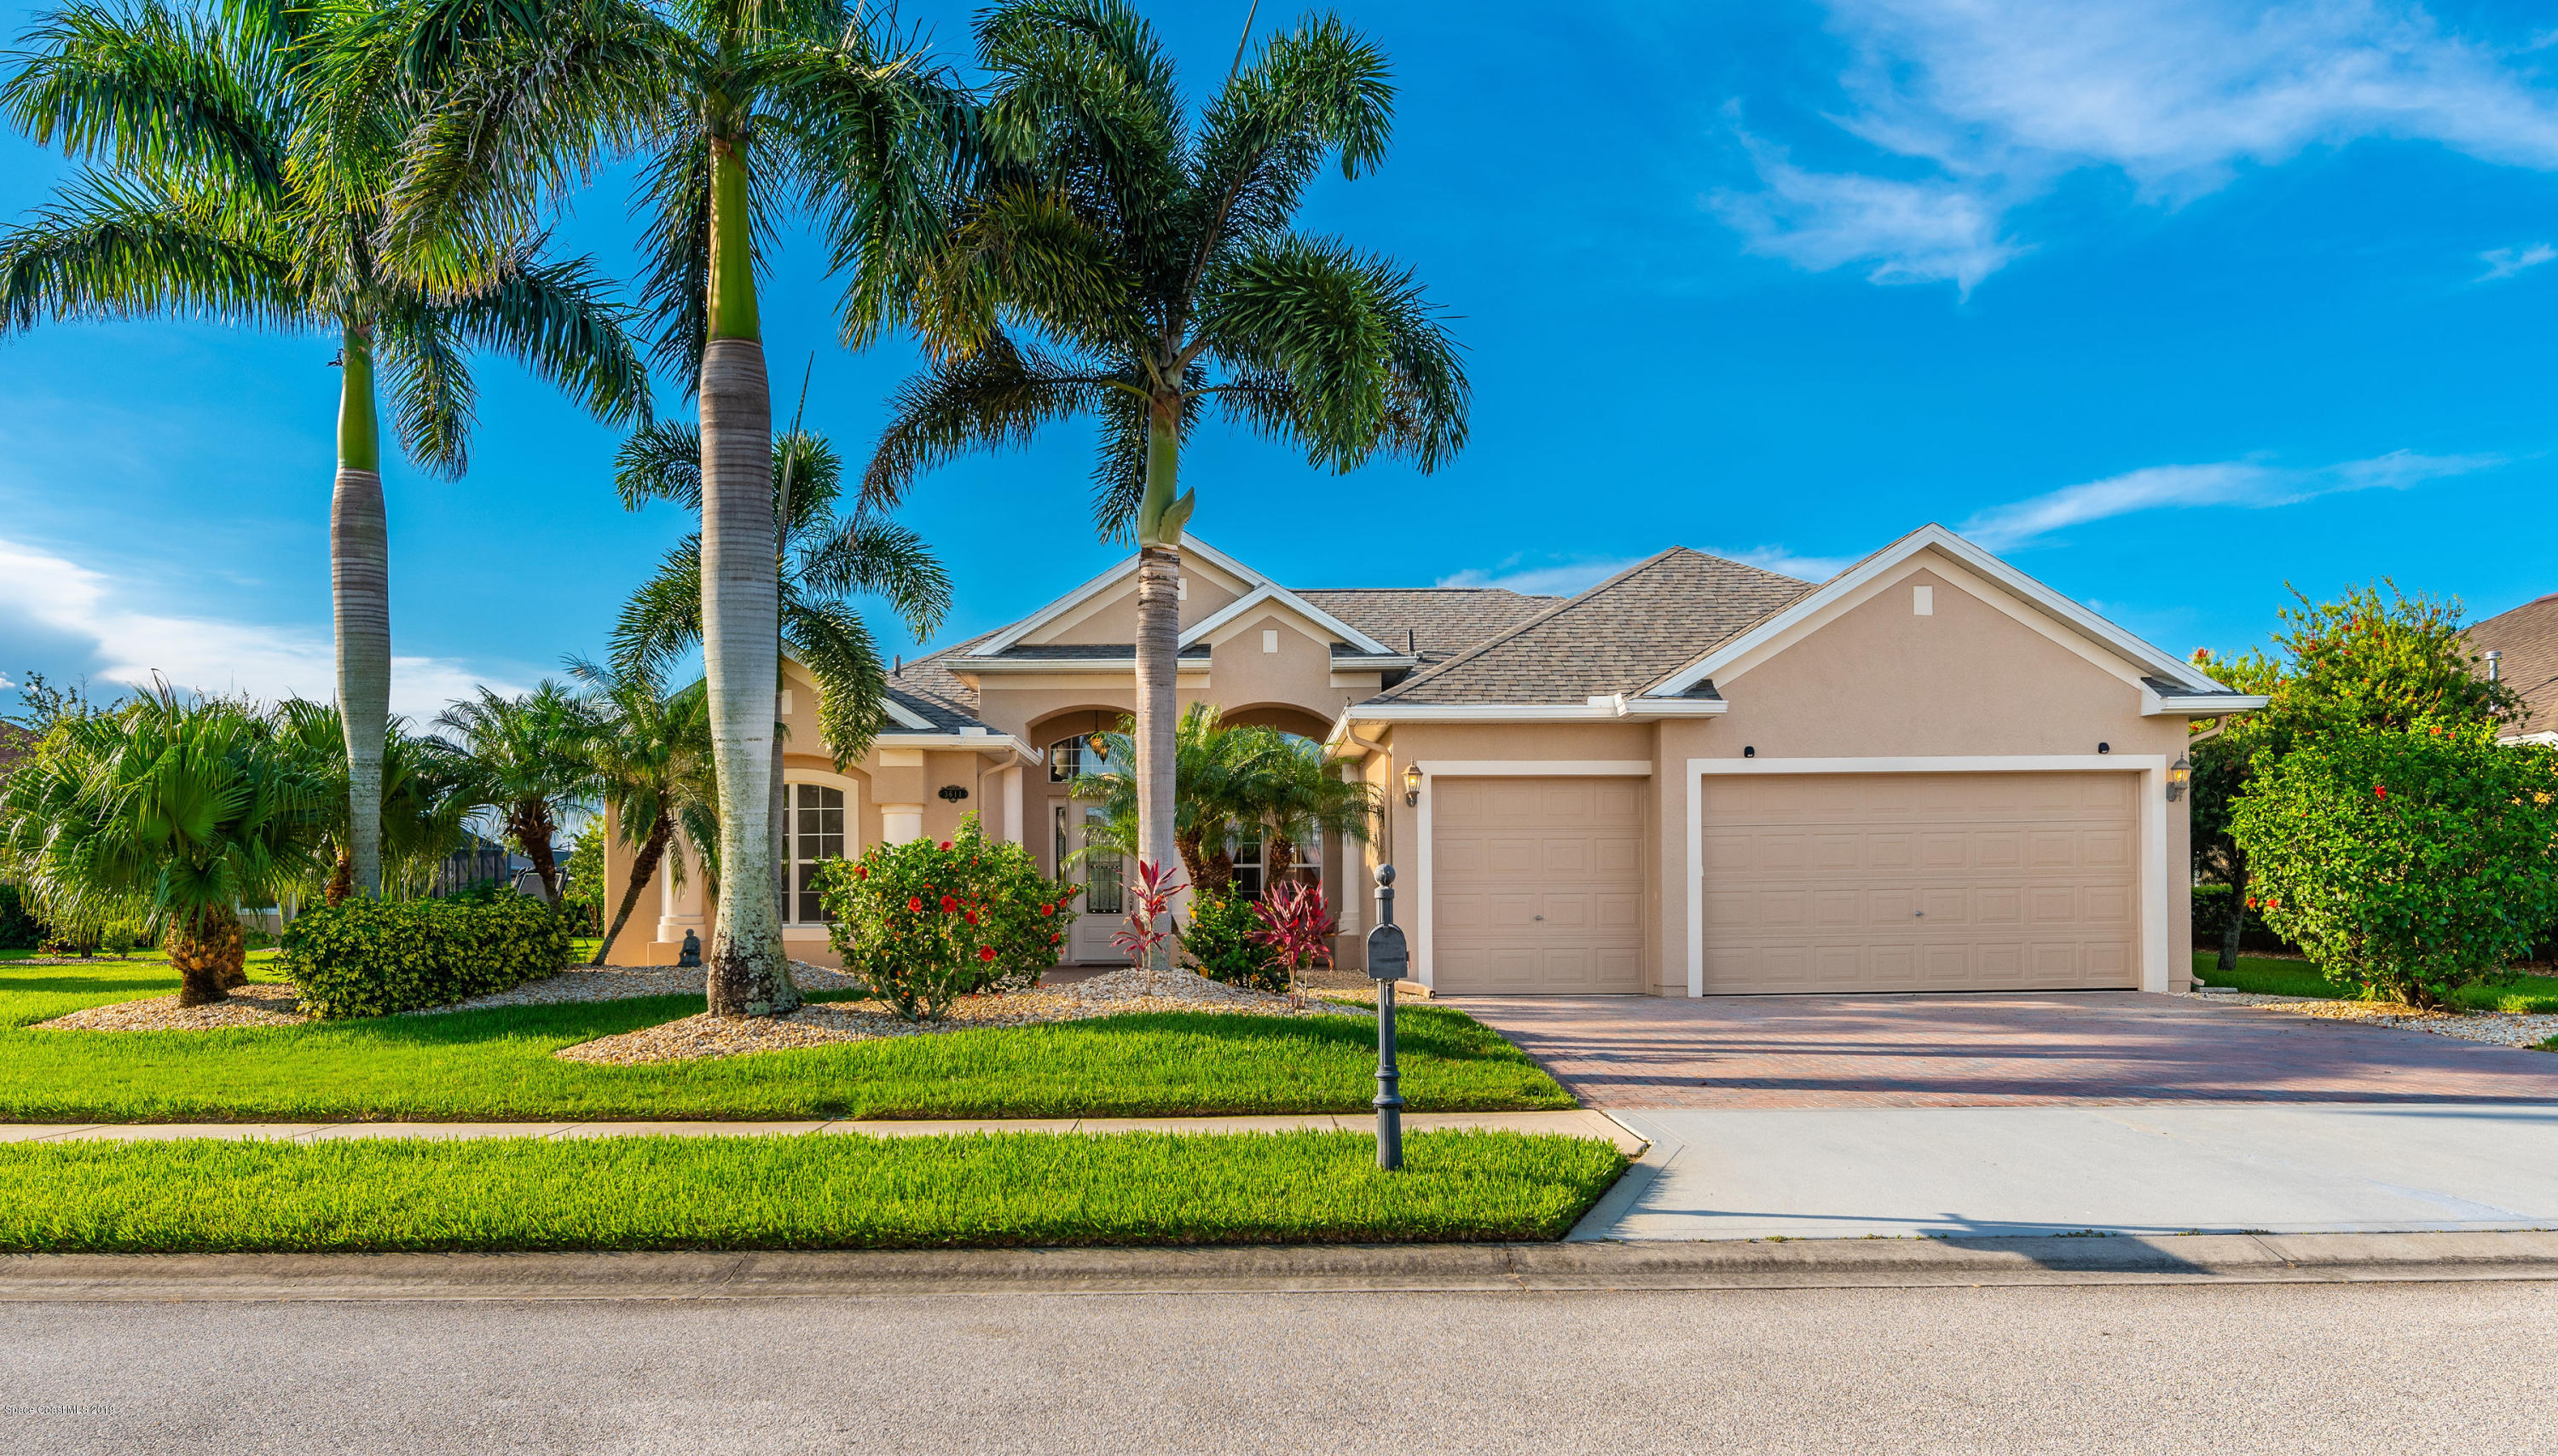 Single Family Homes for Sale at 3611 Terramore Melbourne, Florida 32940 United States